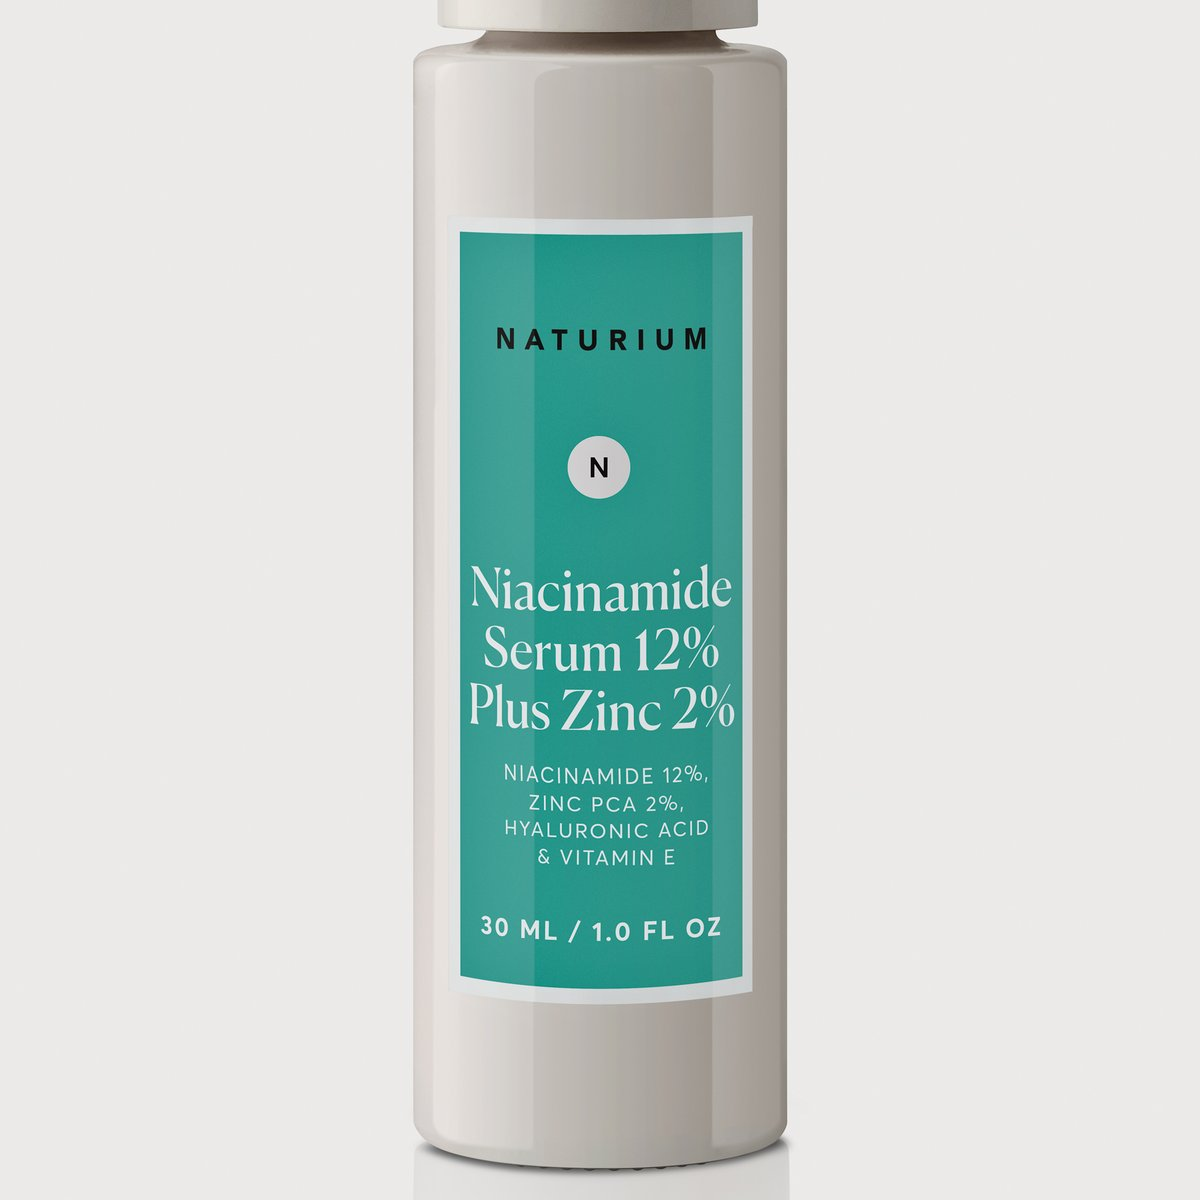 Naturium Niacinamide Serum 12% Plus Zinc 2%. Worldwide Shipping - Singapore, Malaysia, Brunei, Philippines, Indonesia, India, Australia, Hong Kong, USA, Europe!